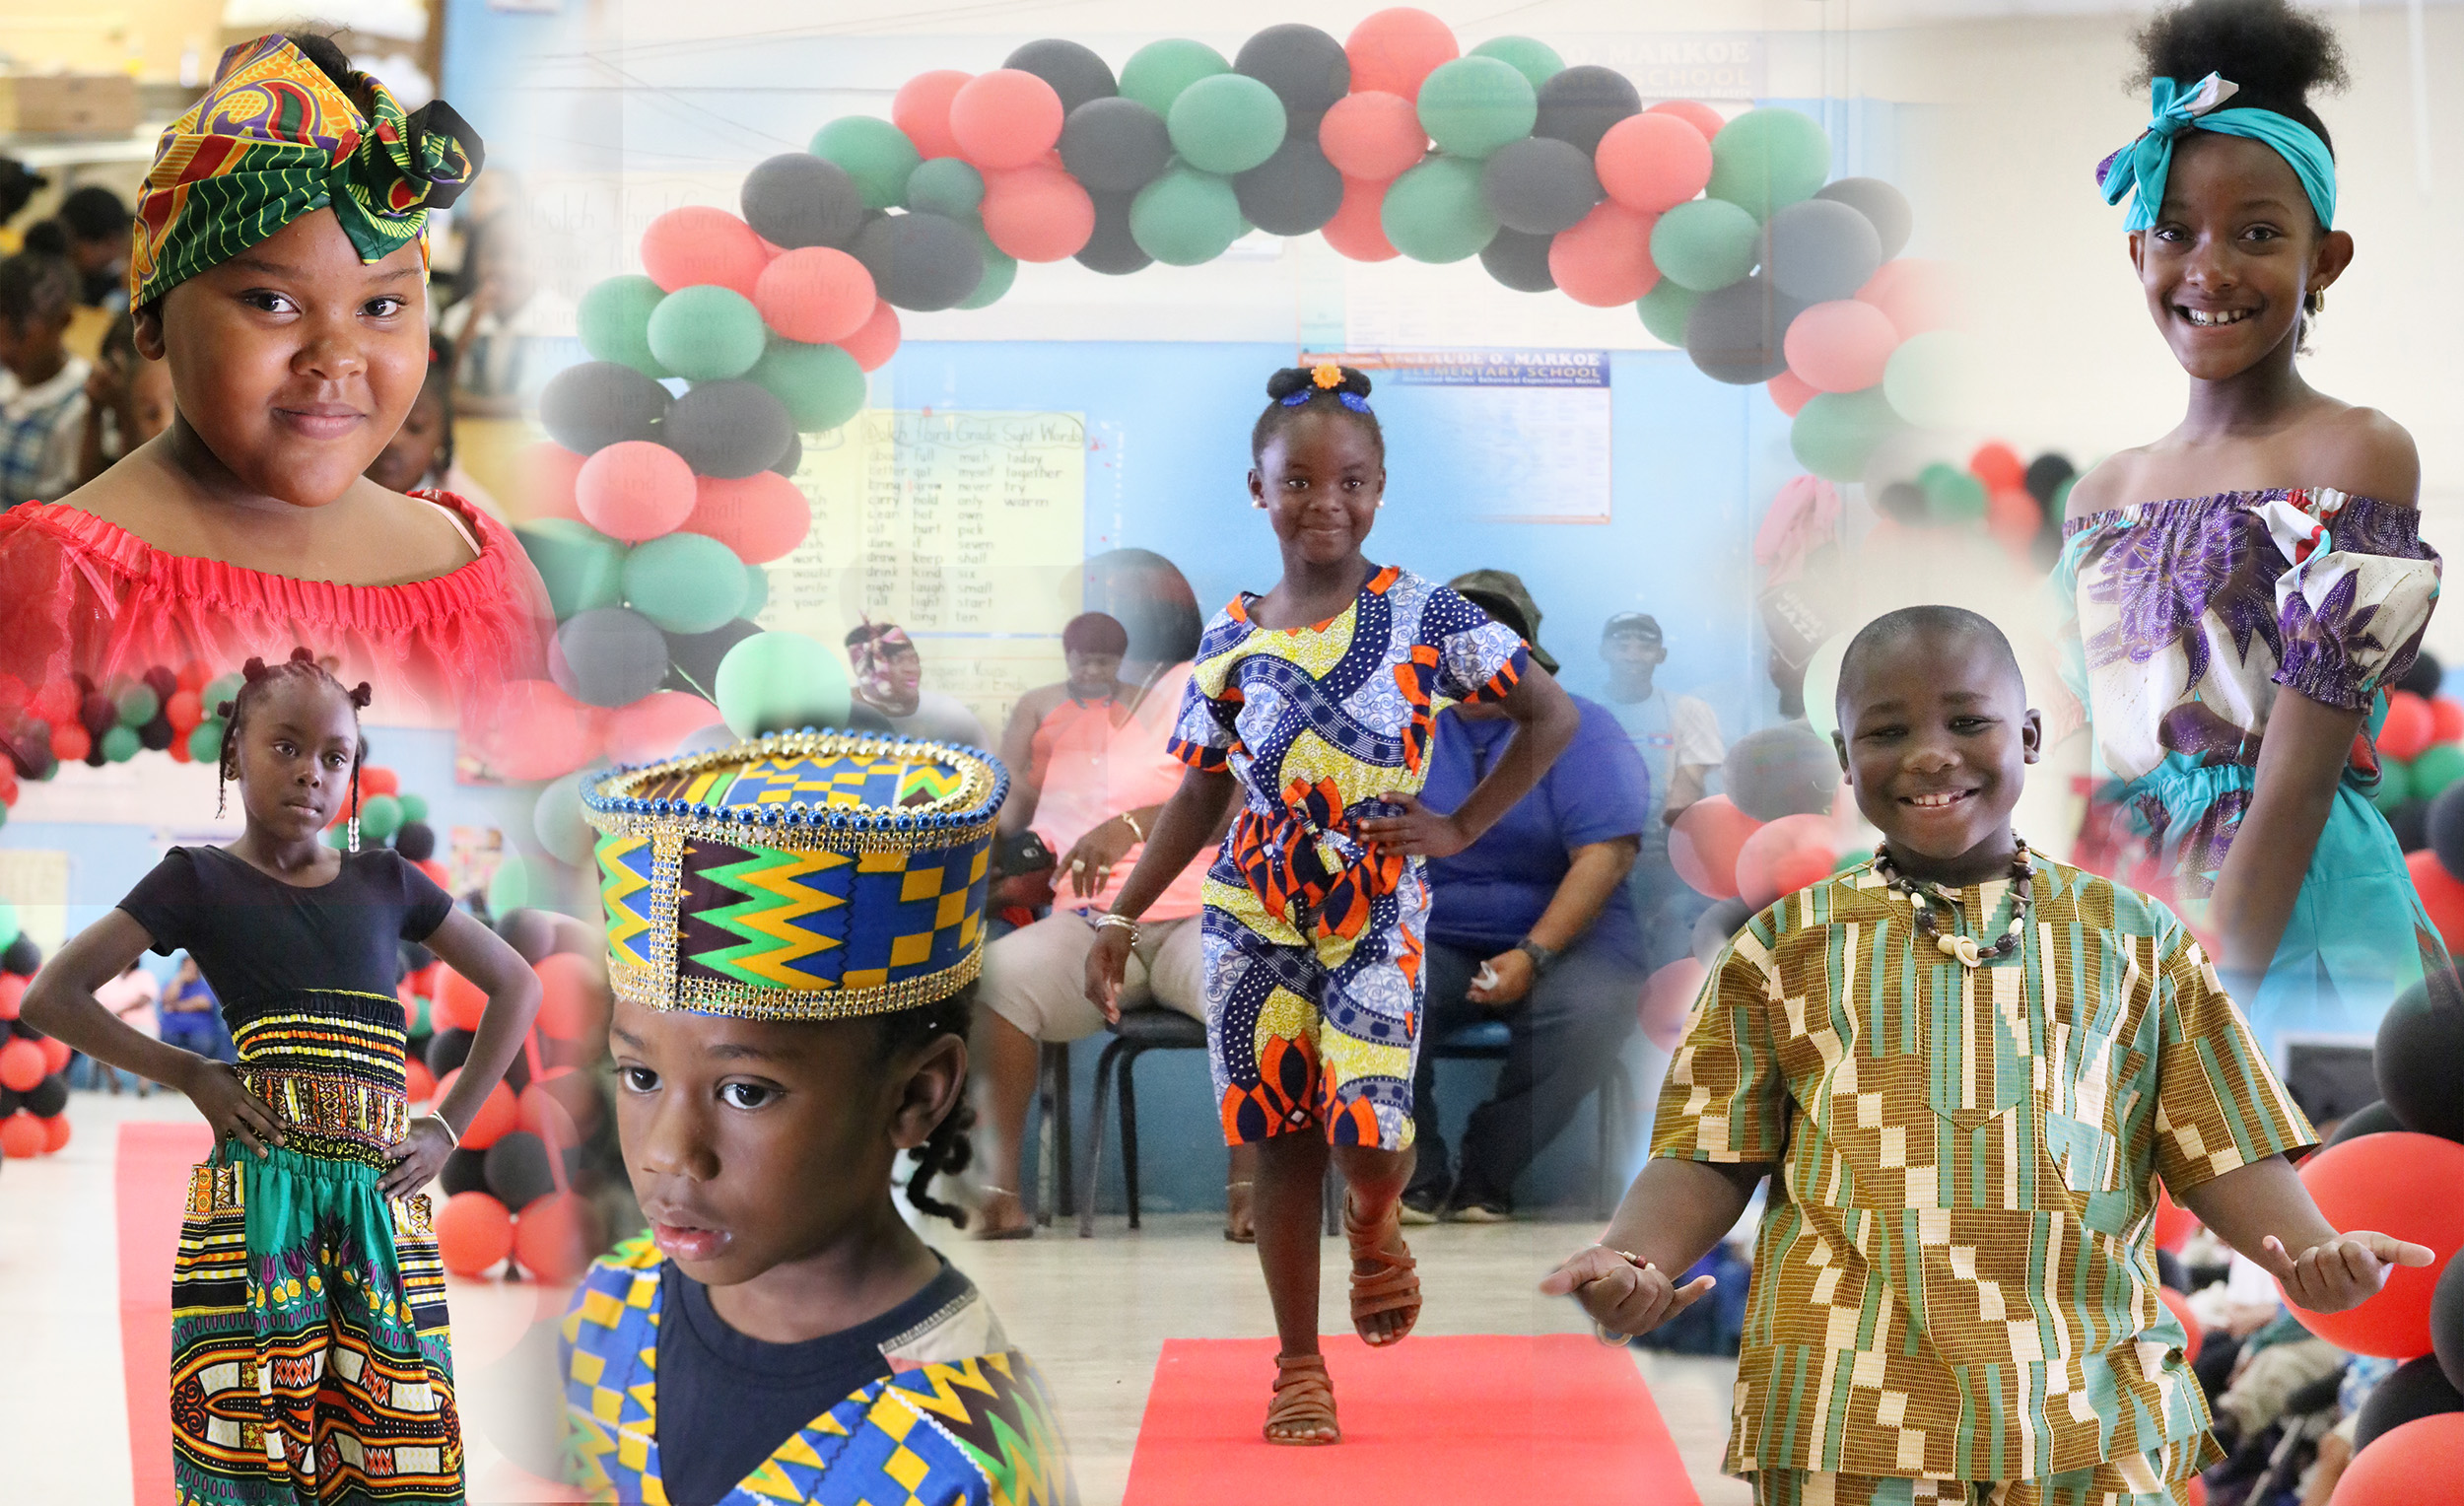 Claude O. Markoe Elementary School Commemorates Black History Month With African Wear Fashion Show